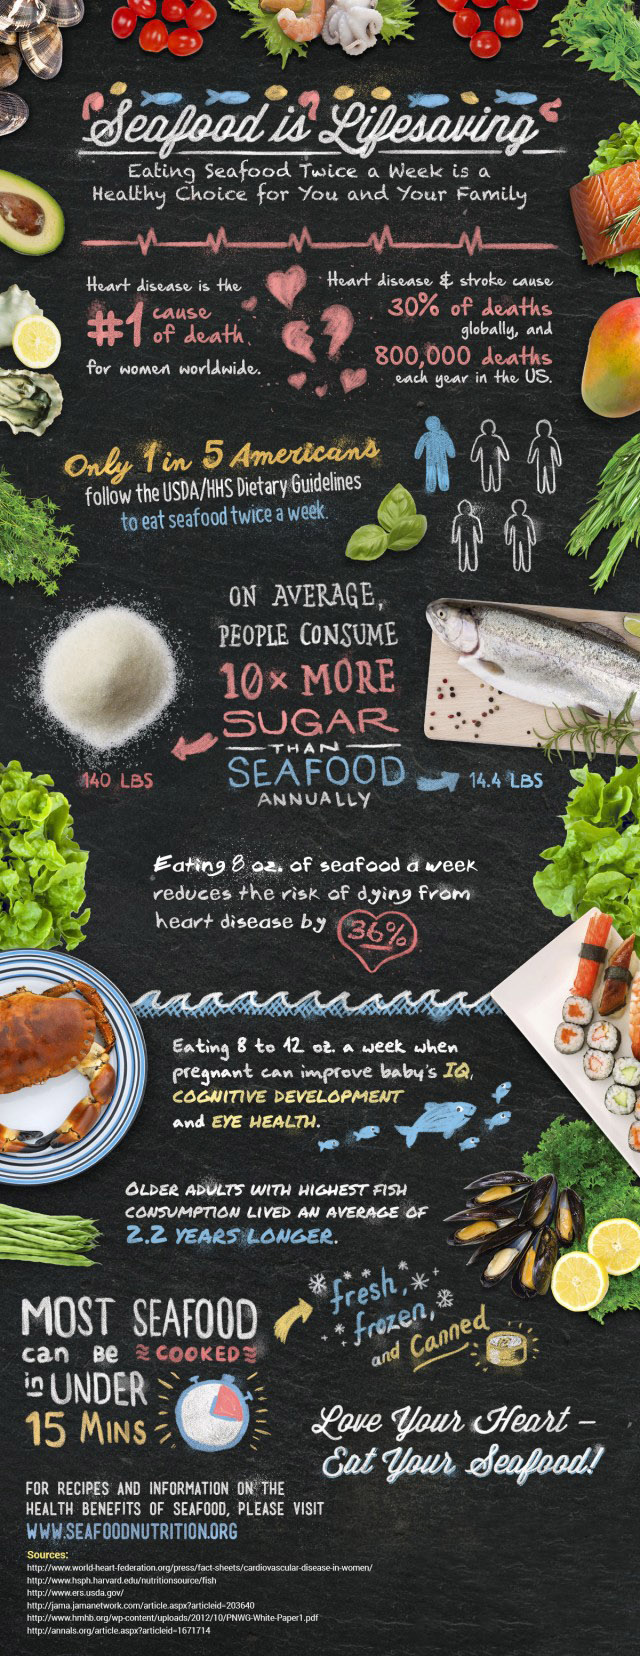 Seafood Live Longer Infographic